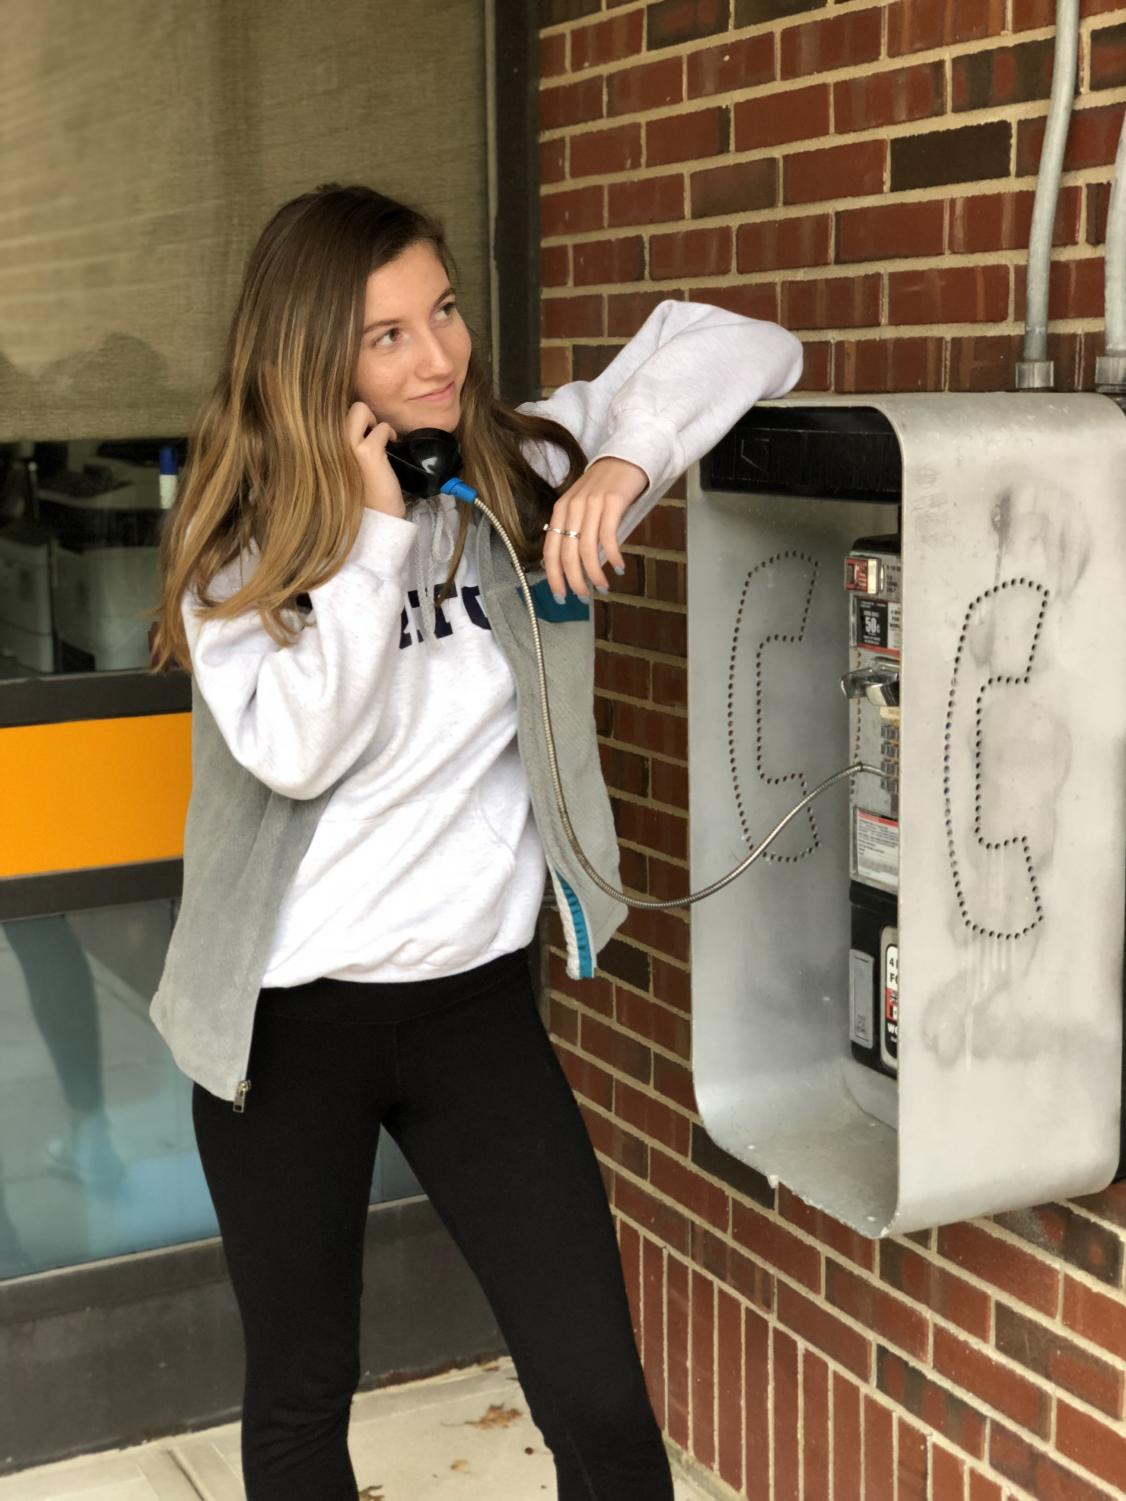 Senior Mackenna Faucher making a call on the Triton Payphone.